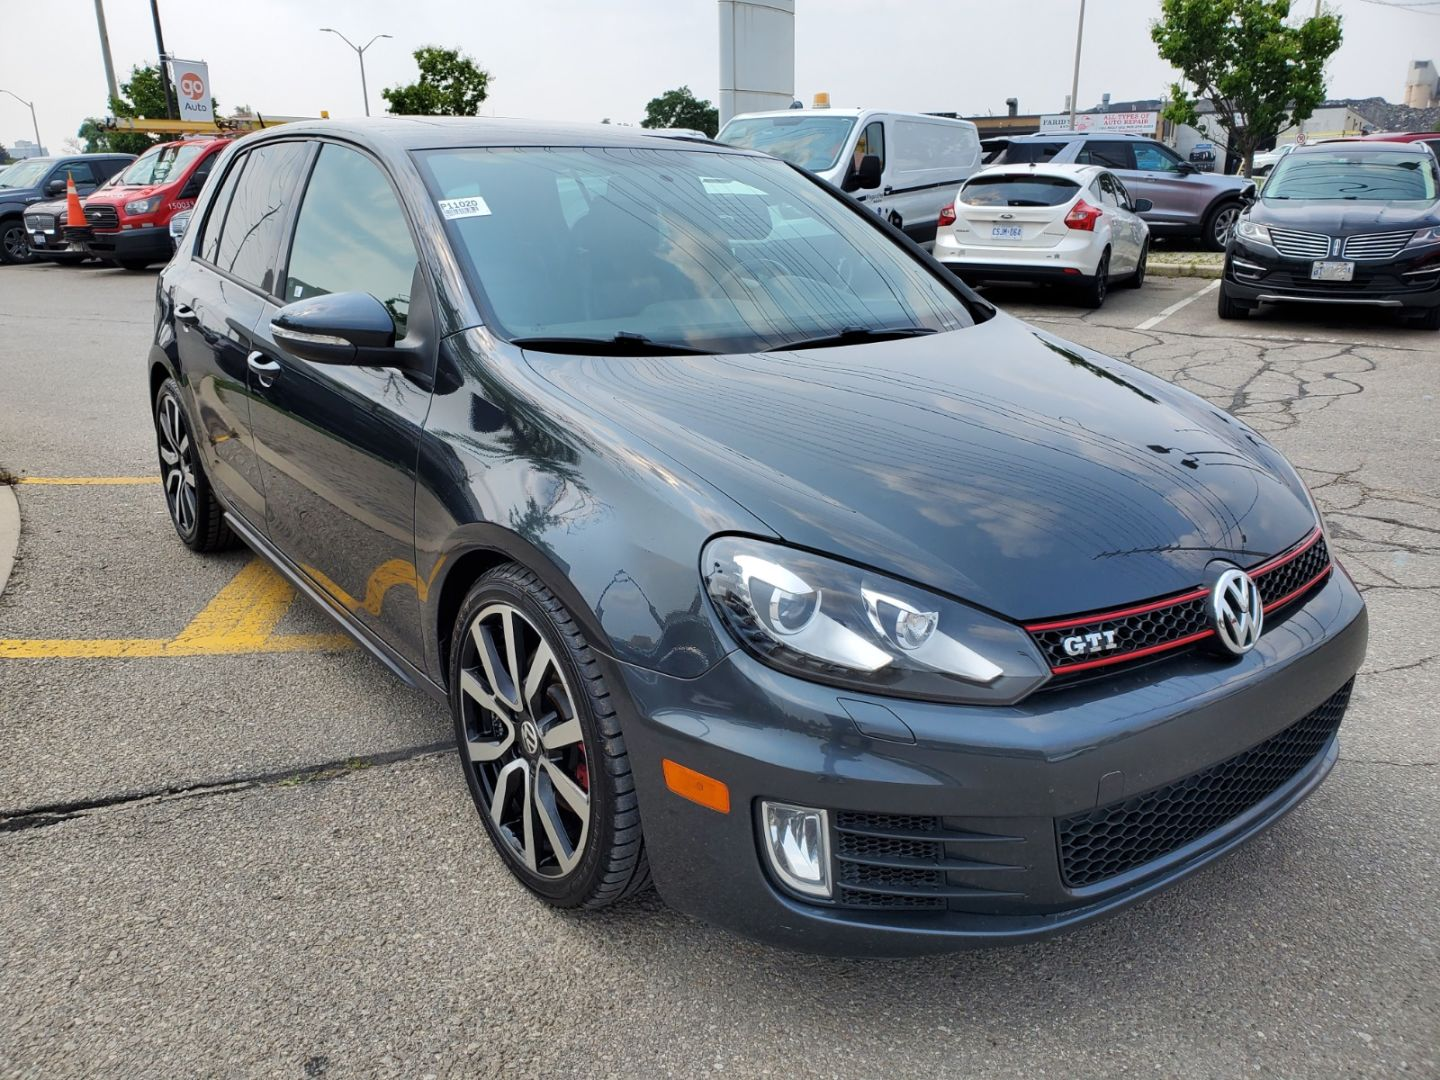 2013 Volkswagen Golf GTI  for sale in Mississauga, Ontario